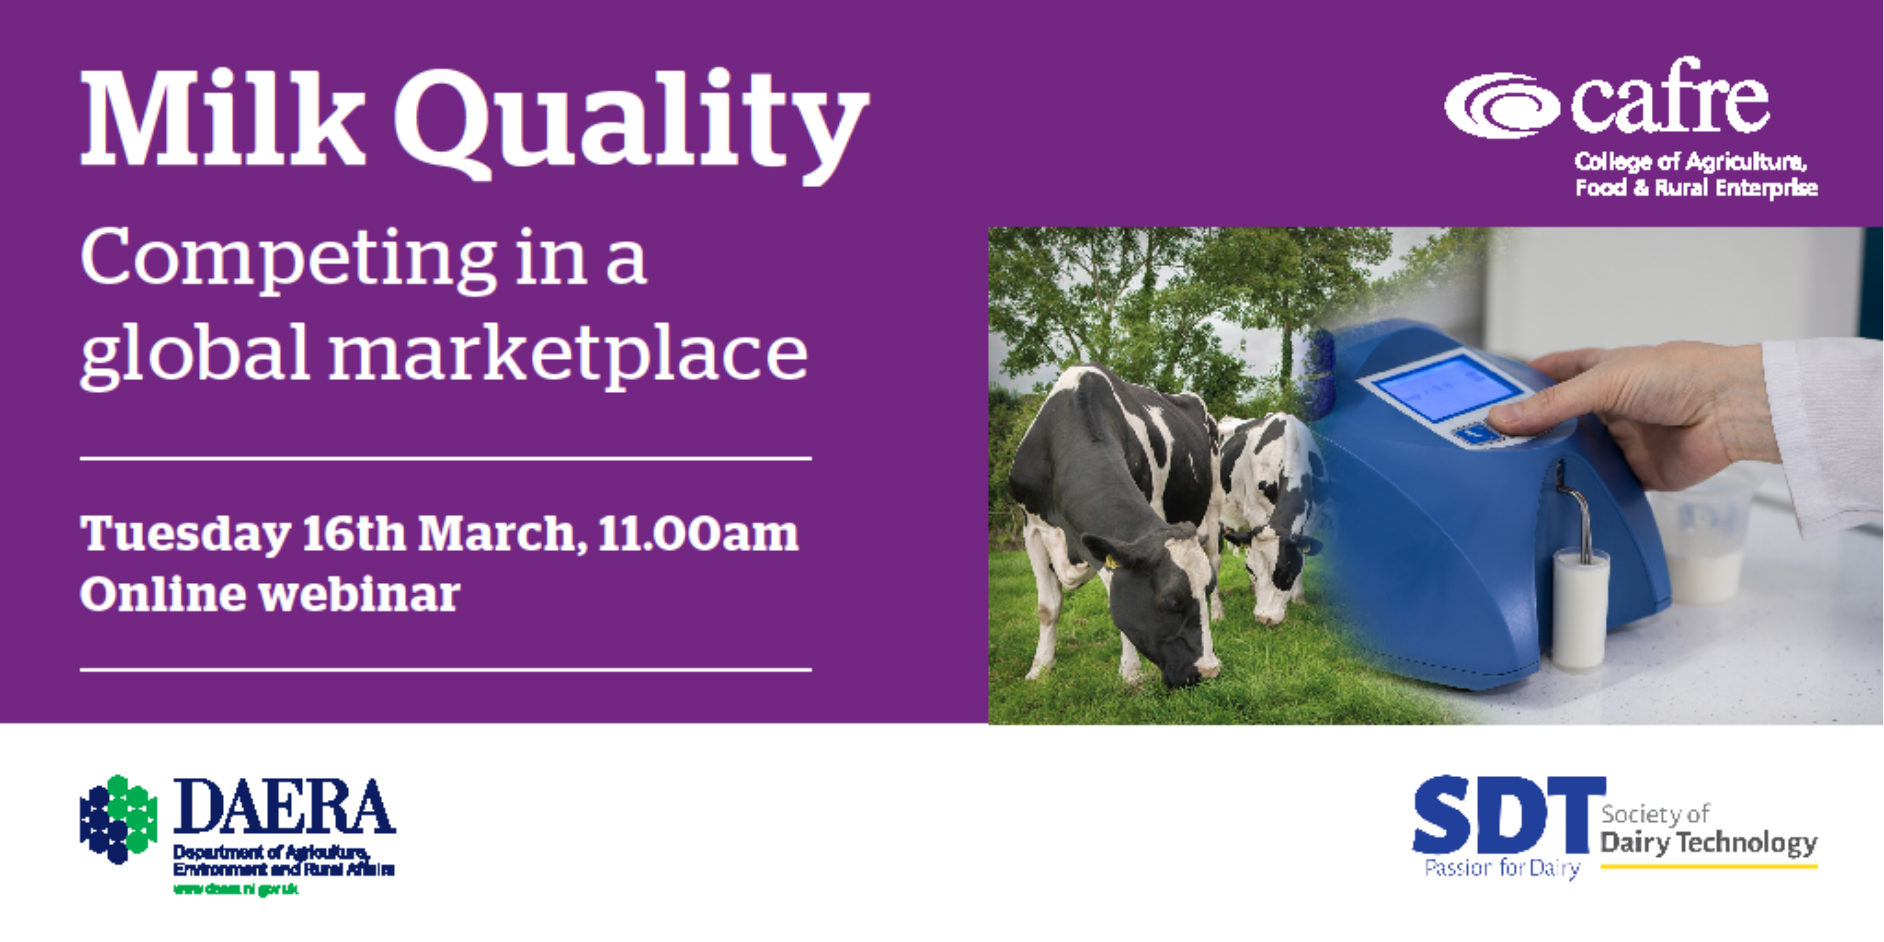 CAFRE/SDT Joint Seminar: Milk Quality - Competing in a global marketplace